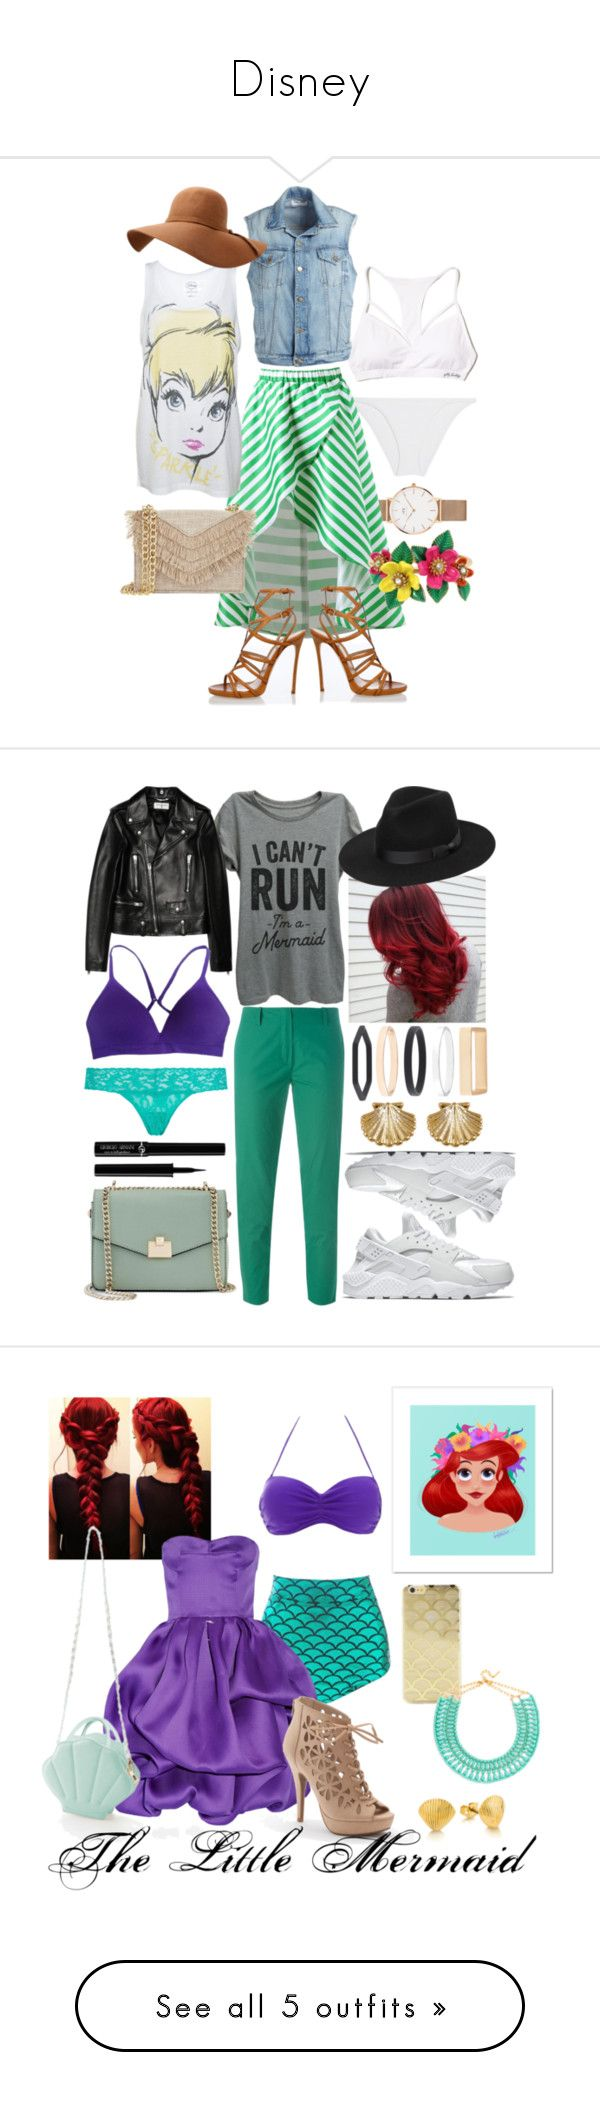 """""""Disney"""" by julia-awesome ❤ liked on Polyvore featuring Daniel Wellington, Eres, Hollister Co., Disney, Frame, Dsquared2, Cynthia Rowley, Betsey Johnson, Vanessa Bruno and Yves Saint Laurent"""